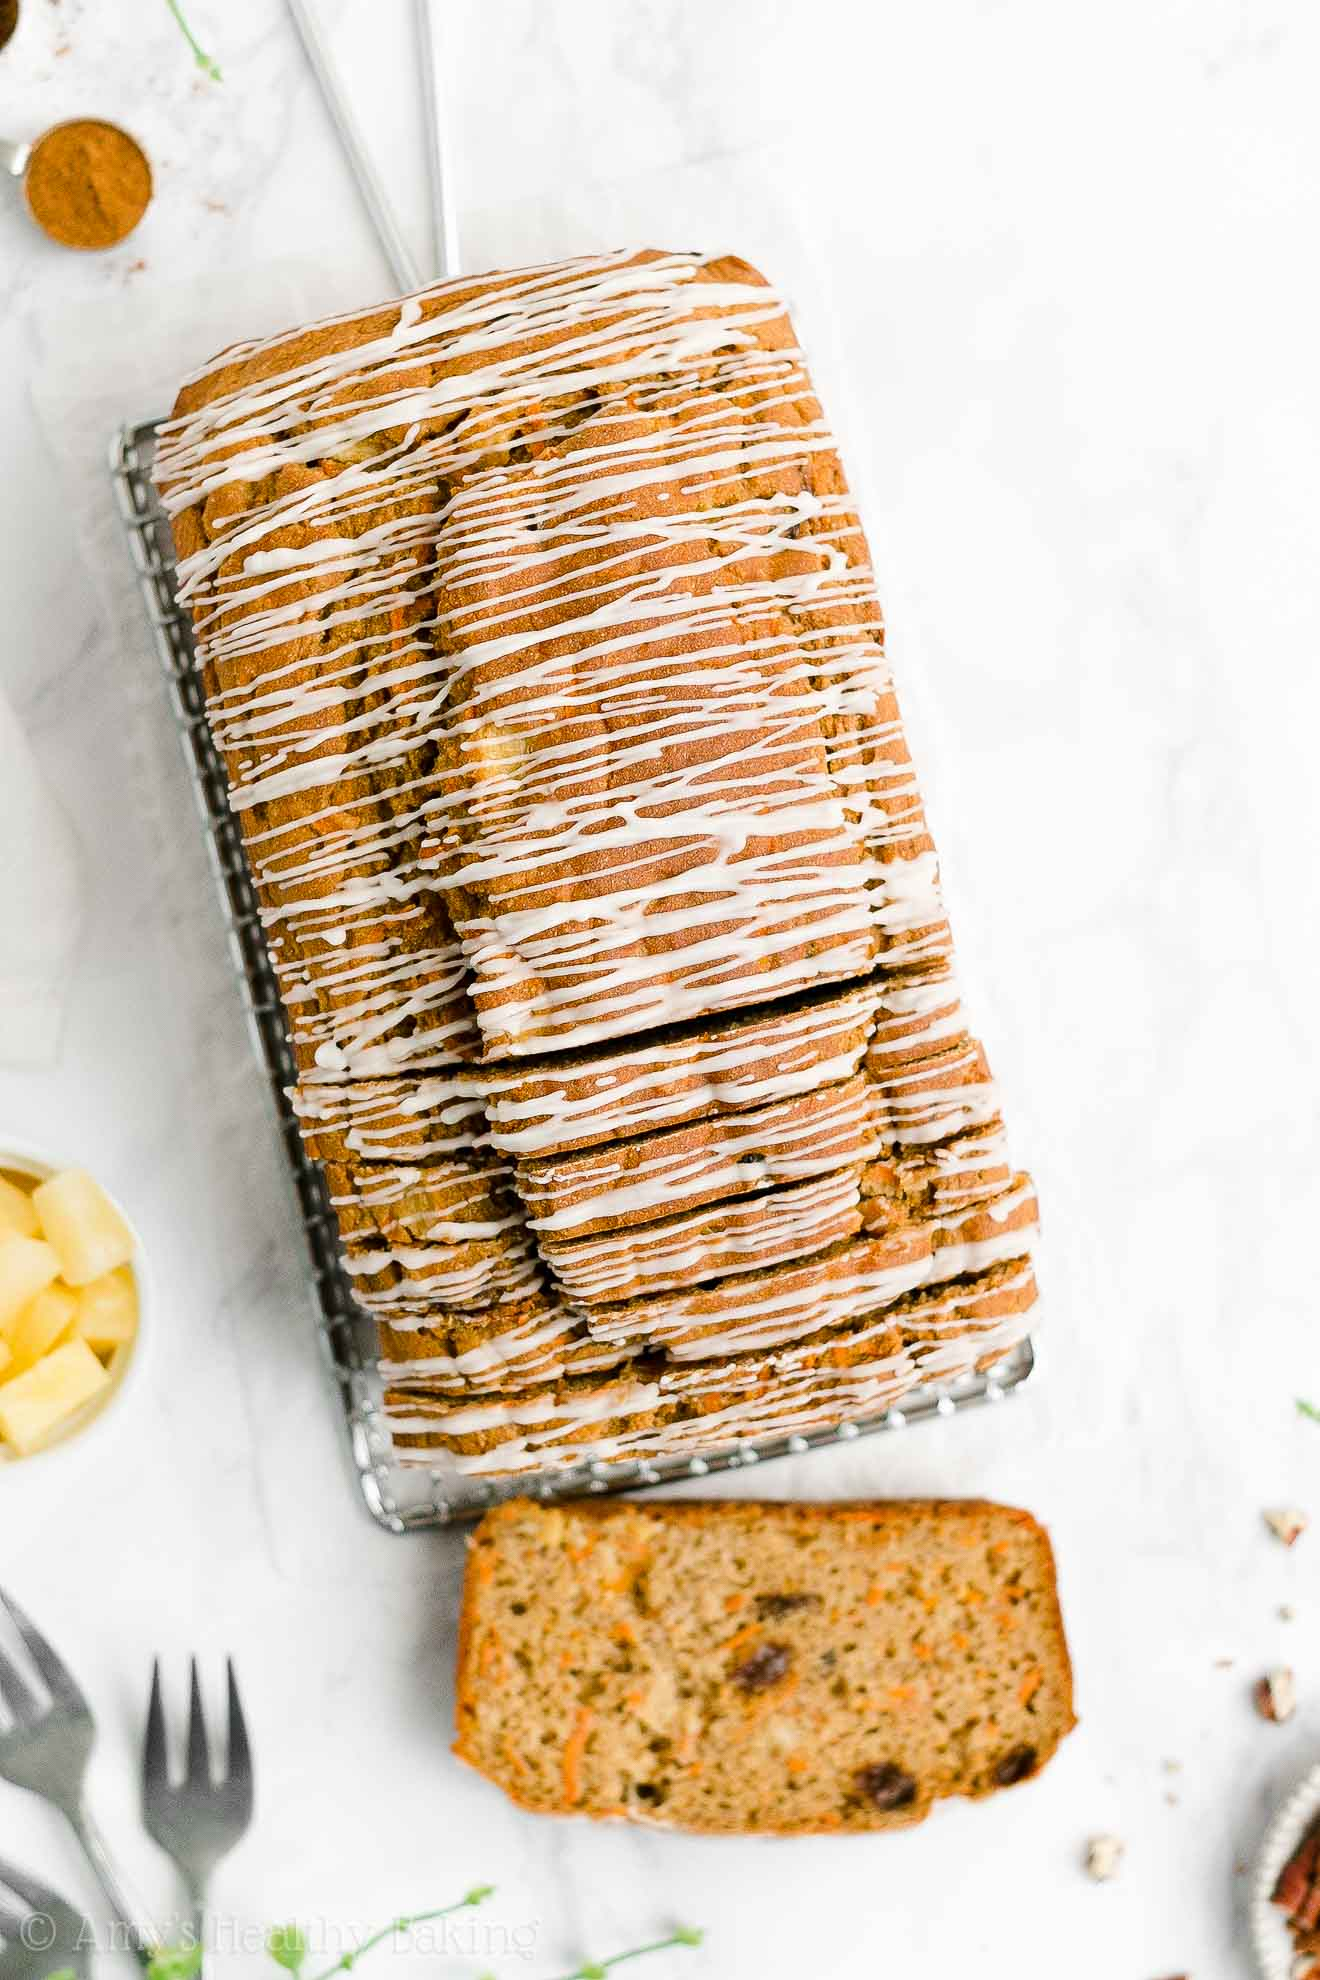 Best Easy Healthy Clean Eating Greek Yogurt Pineapple Raisin Carrot Pound Cake